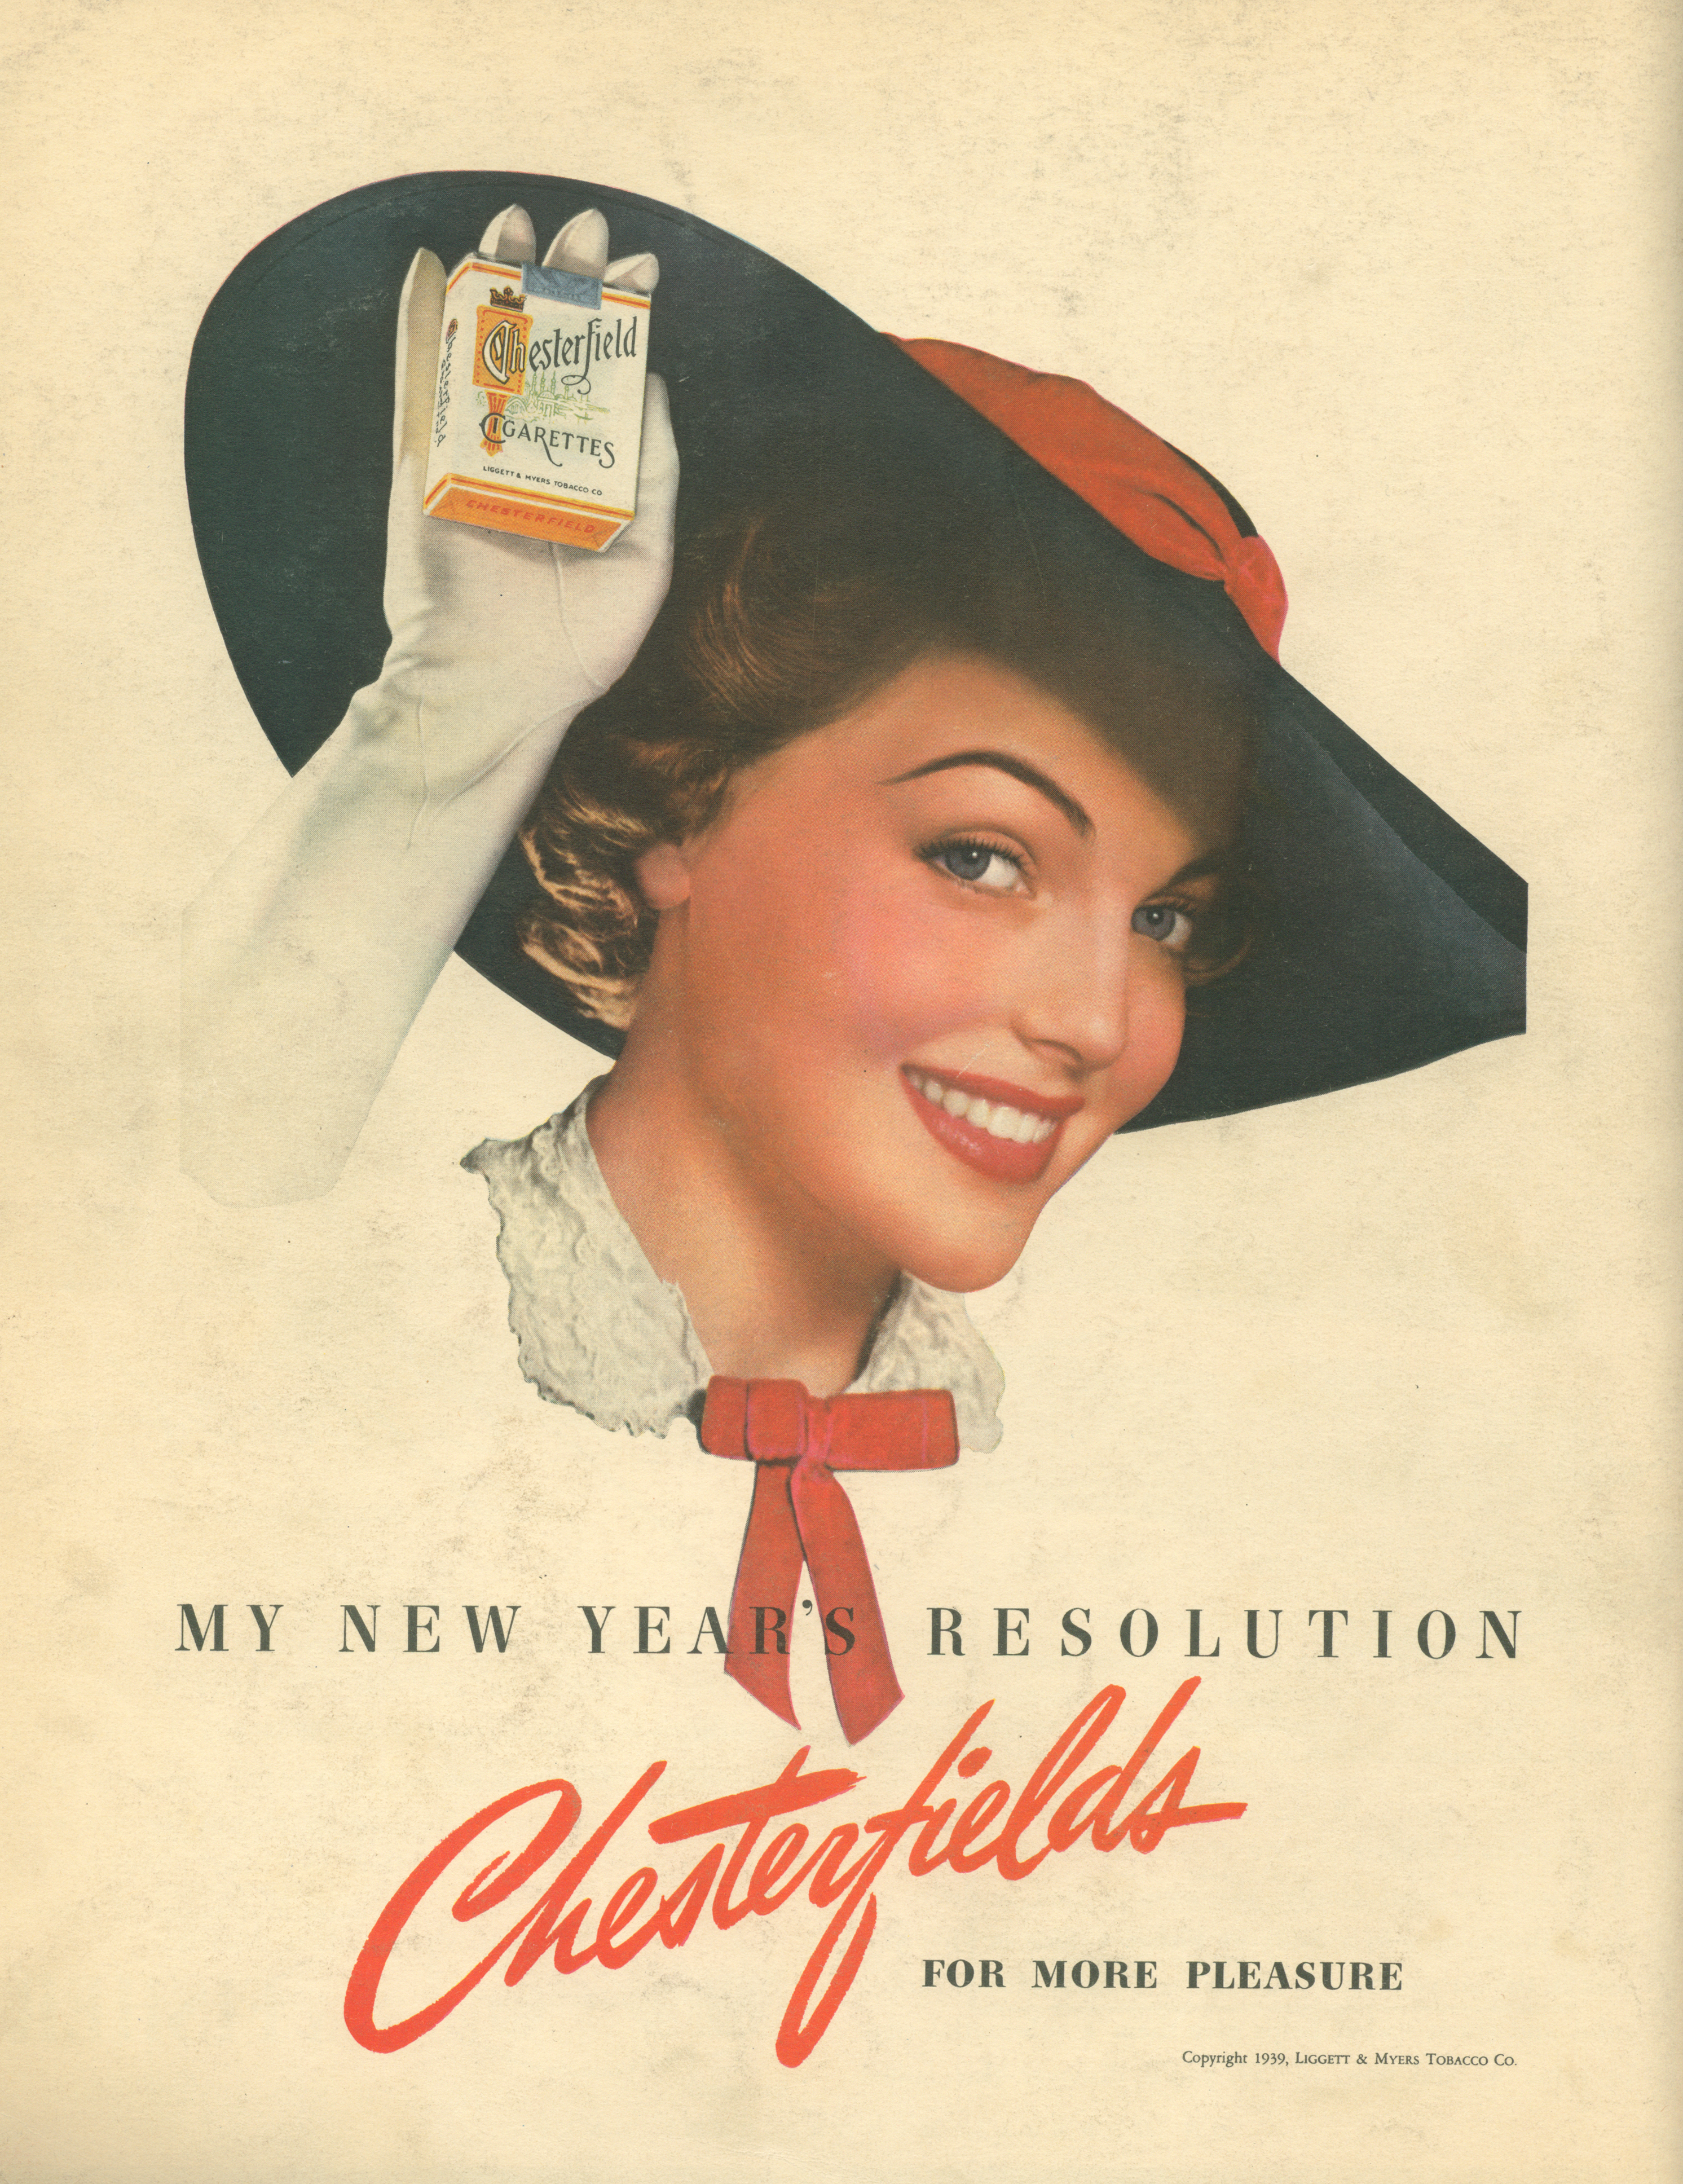 Chesterfield Cigarettes - published in Fortune - January 1939